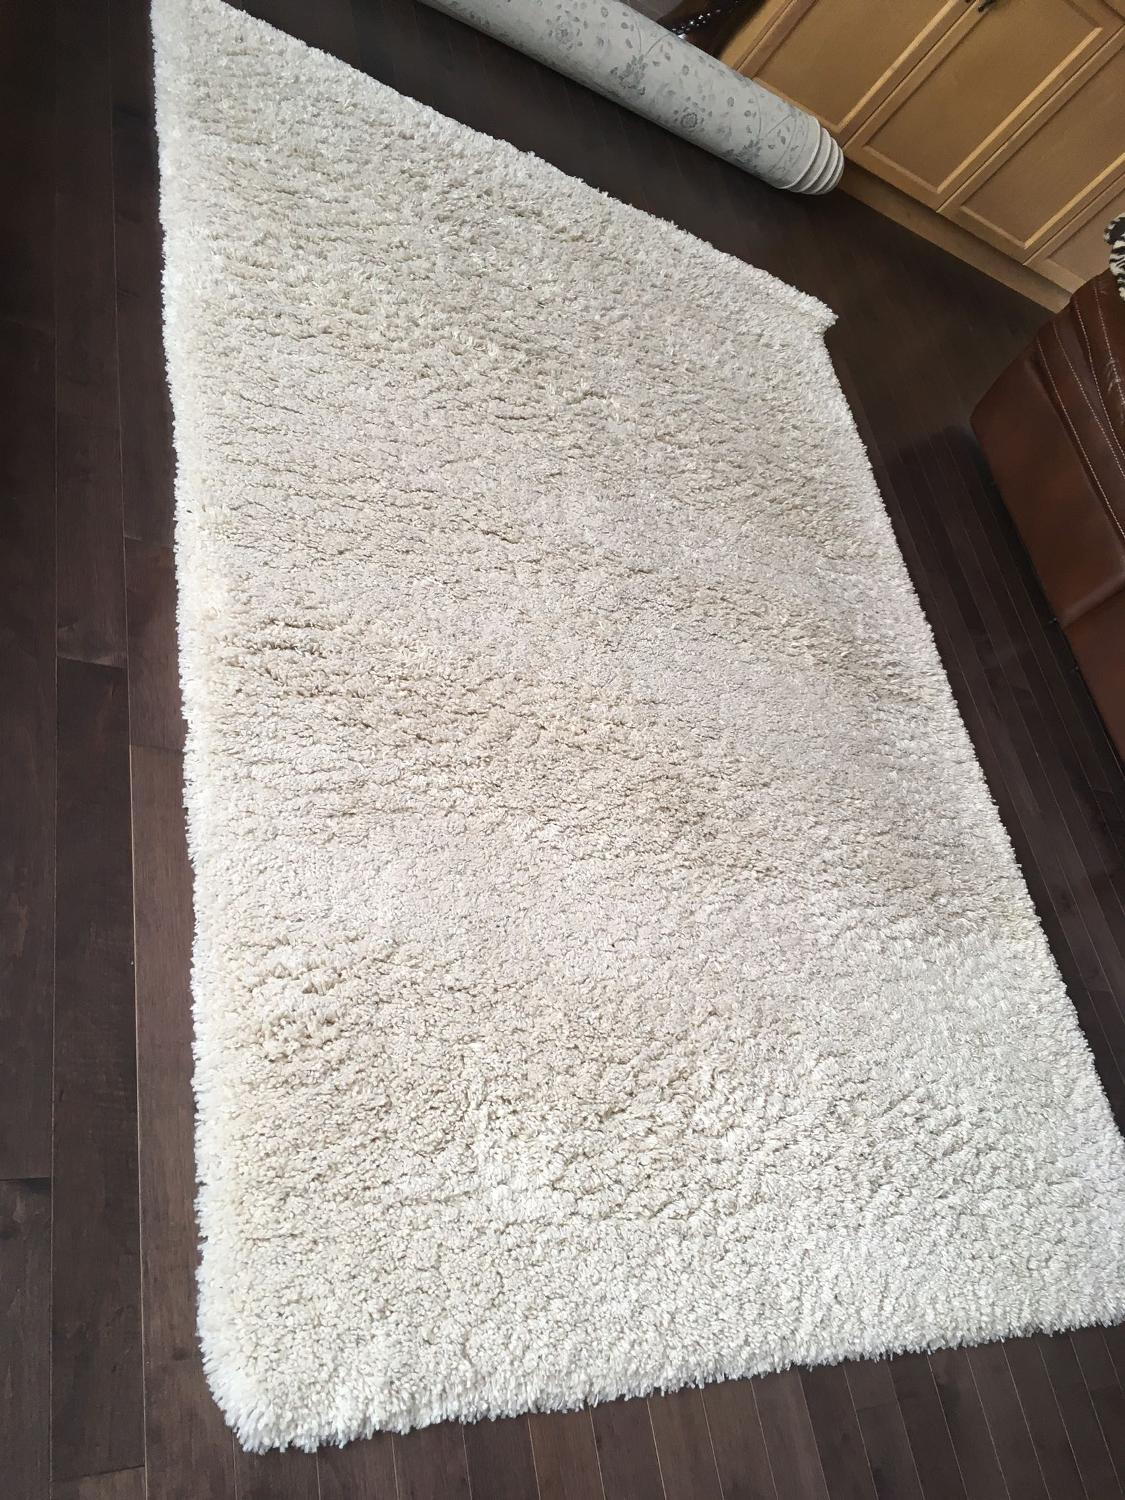 Best White Costco Shag Rug Used For 5 Months Very